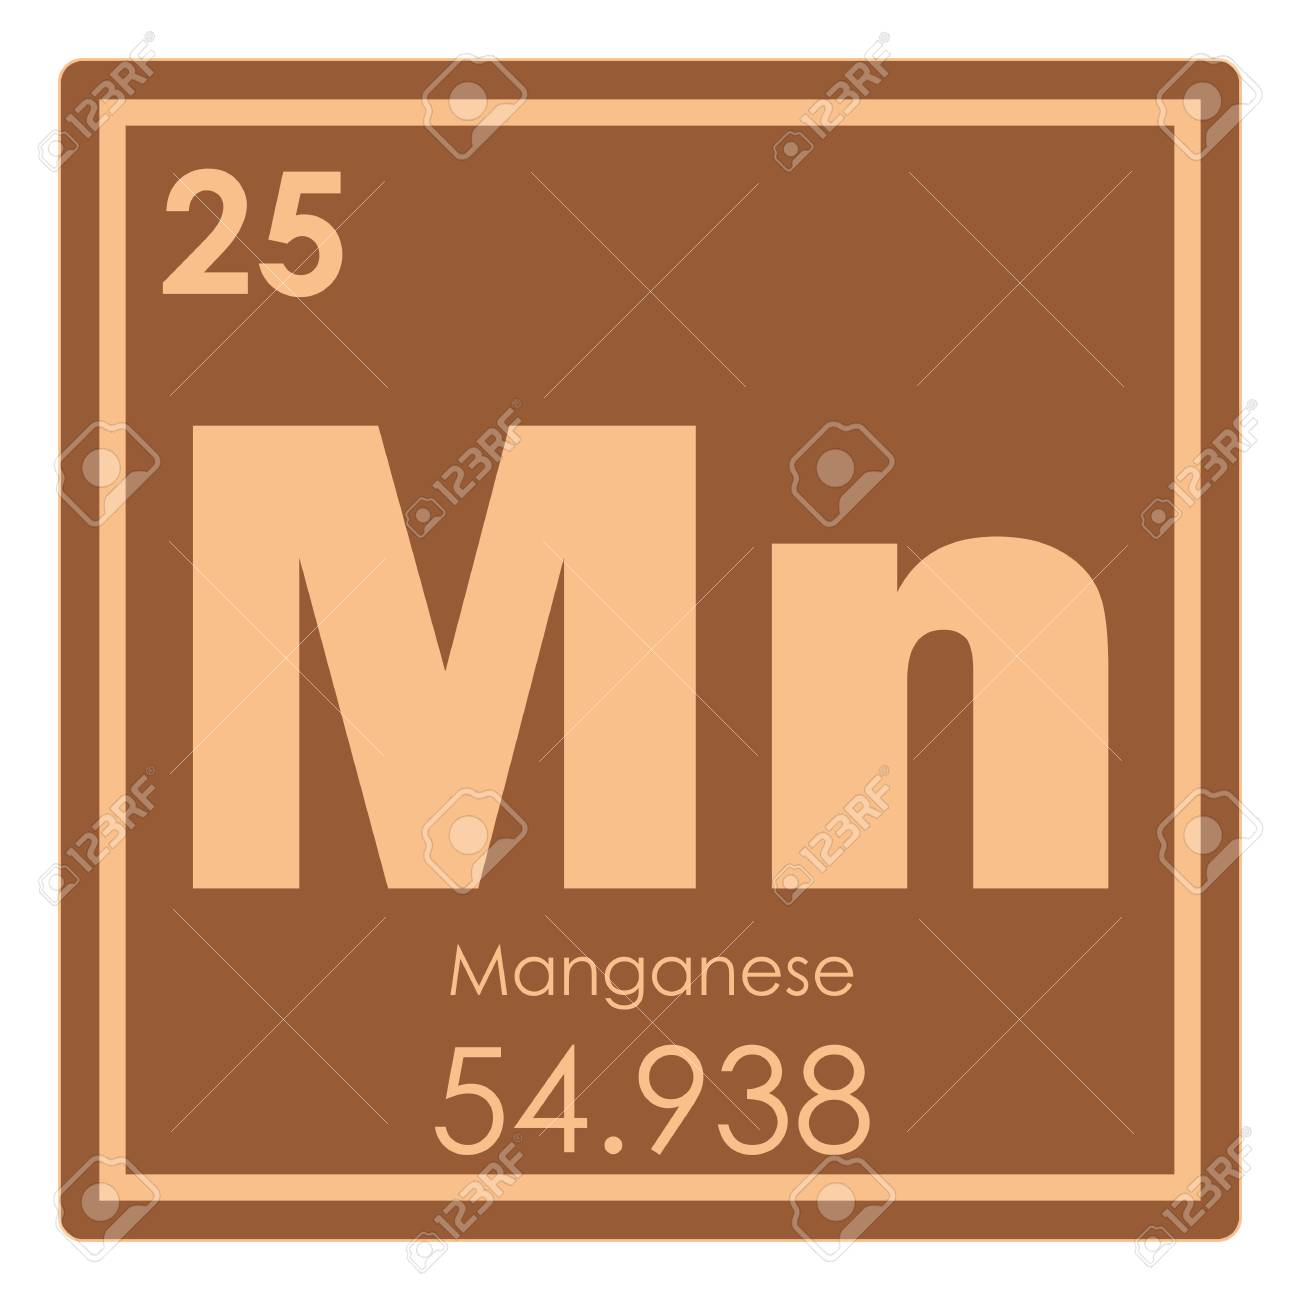 Manganese chemical element periodic table science symbol stock photo manganese chemical element periodic table science symbol stock photo 95132663 urtaz Images